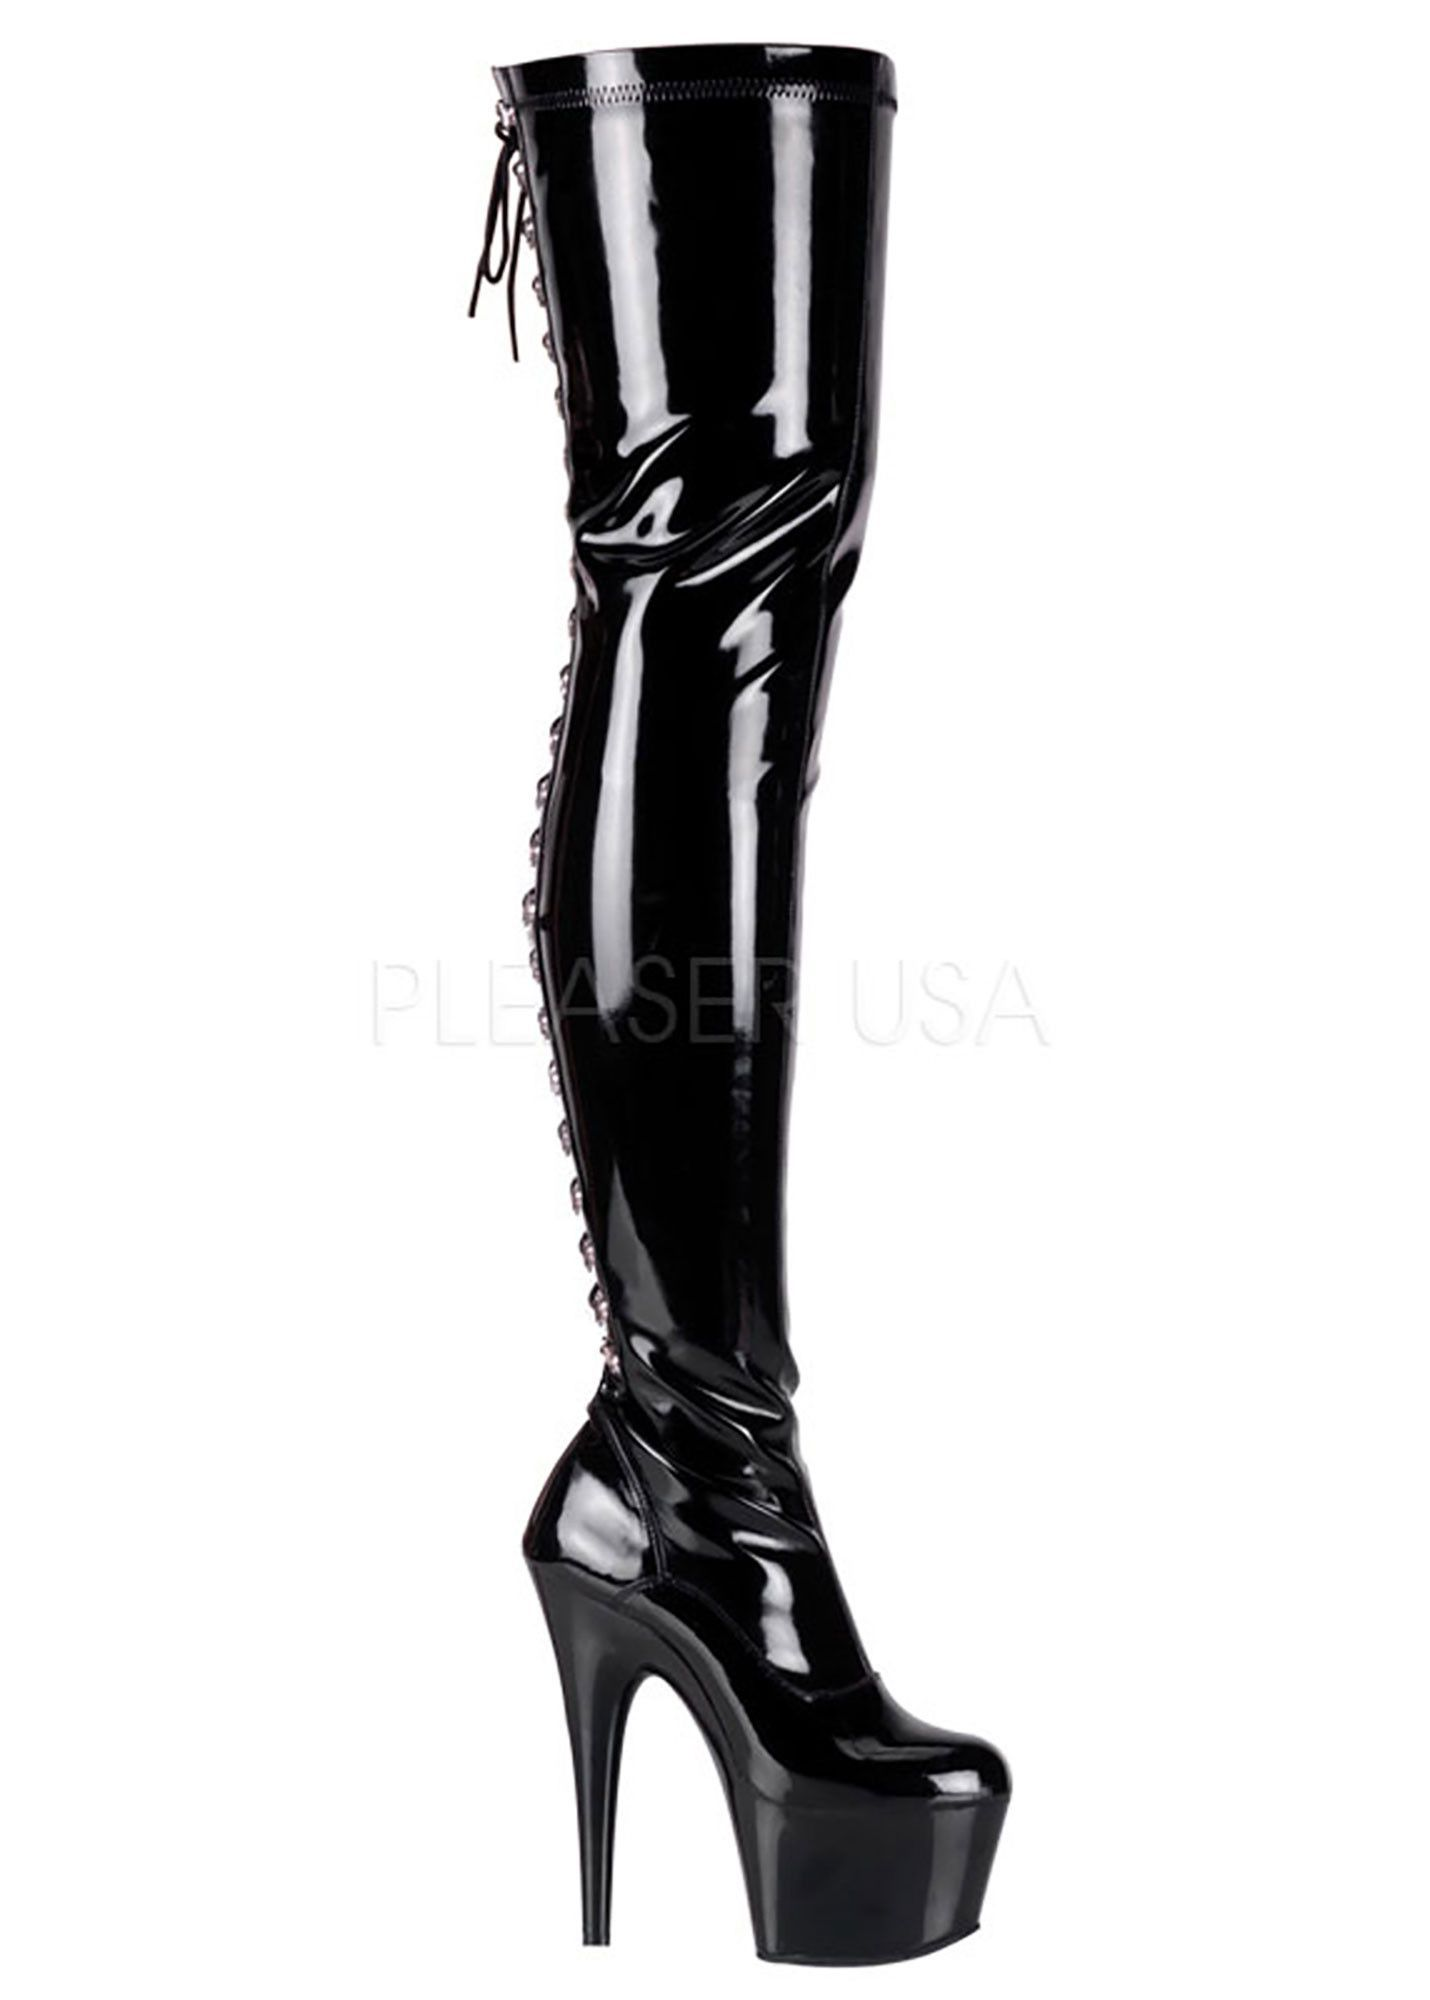 abd426e3a0d Black Stretch Thigh High Stripper Boots